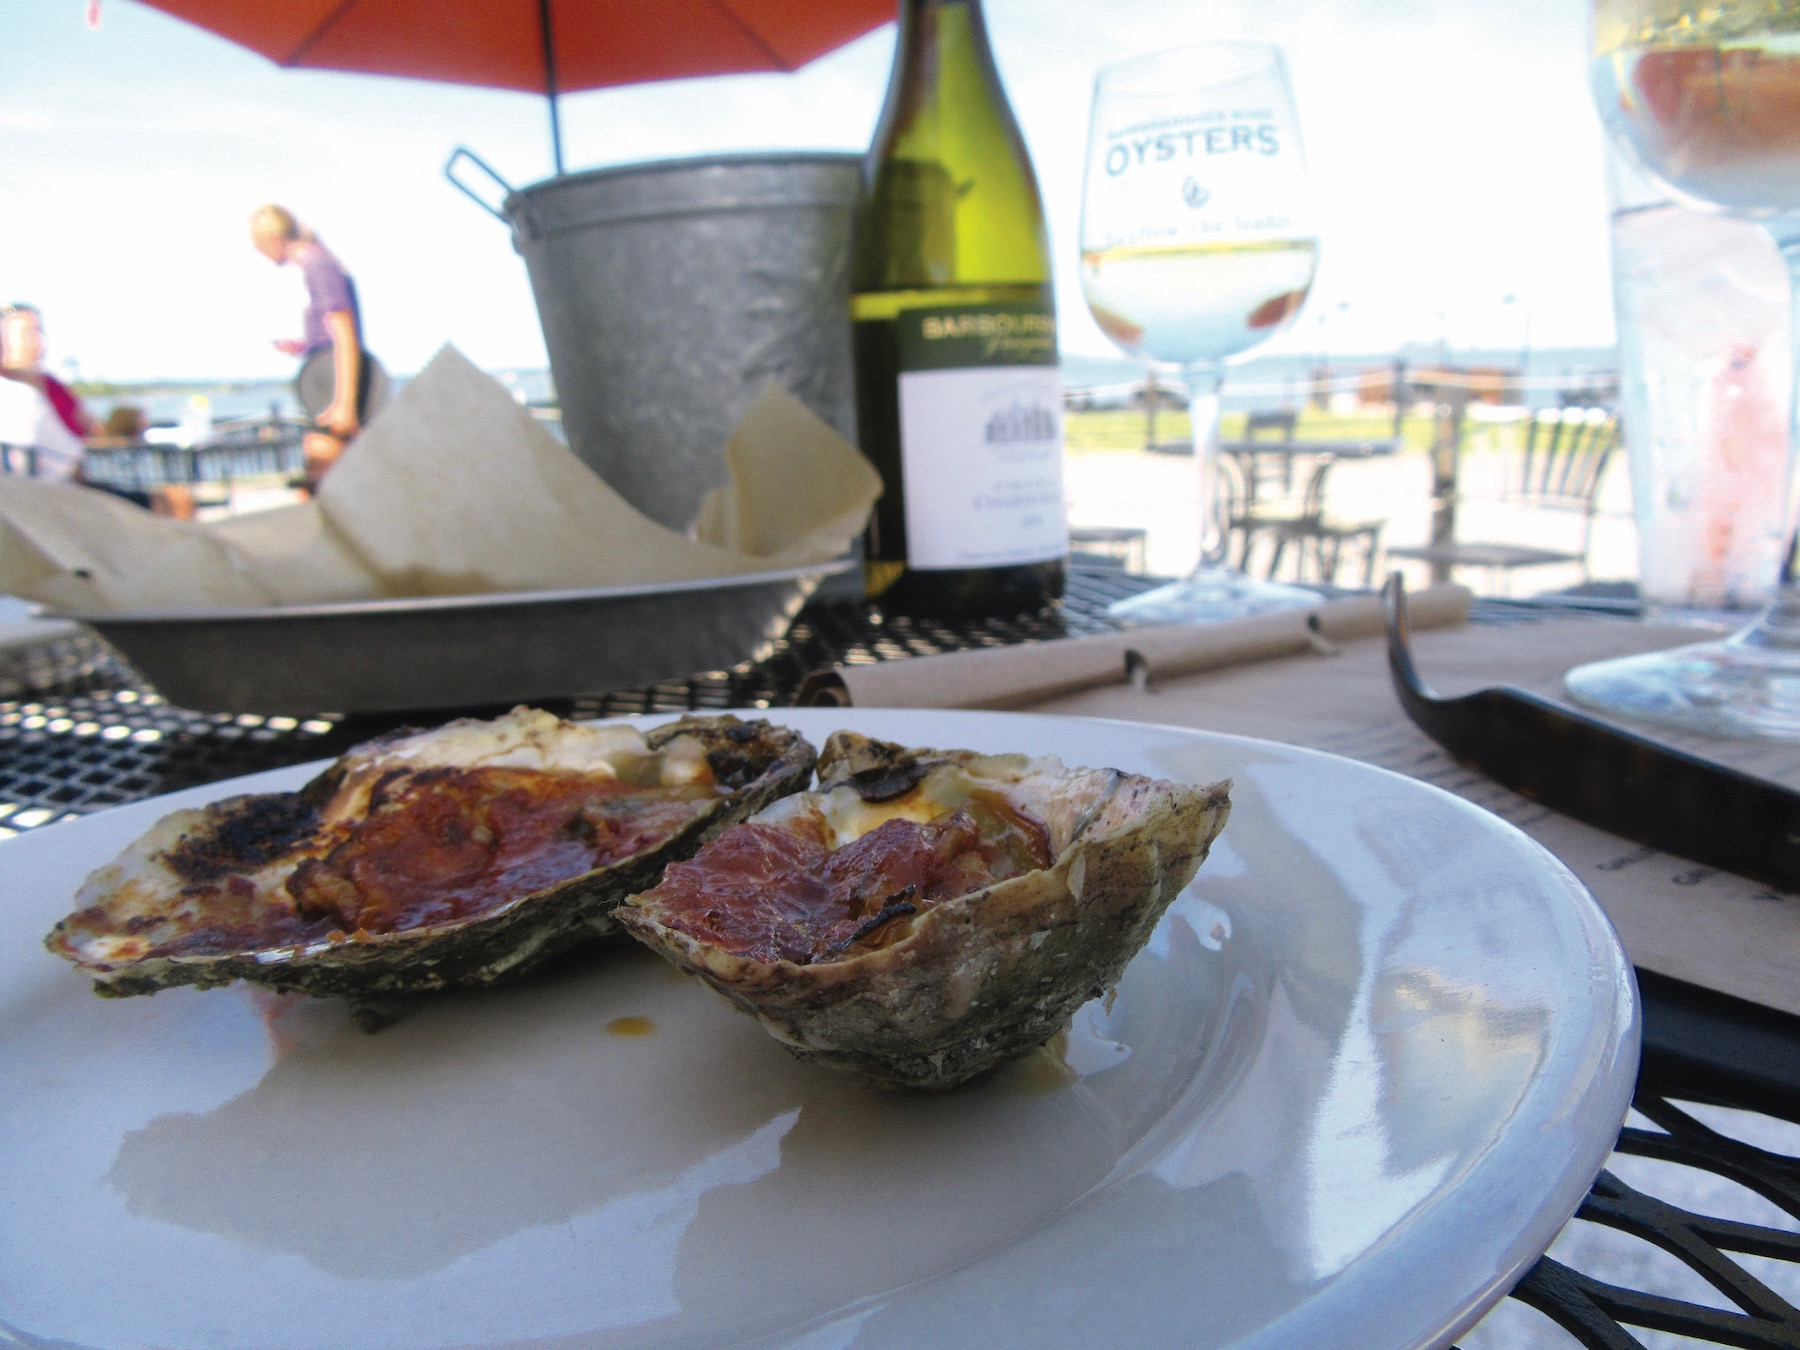 Merroir, Topping, oysters